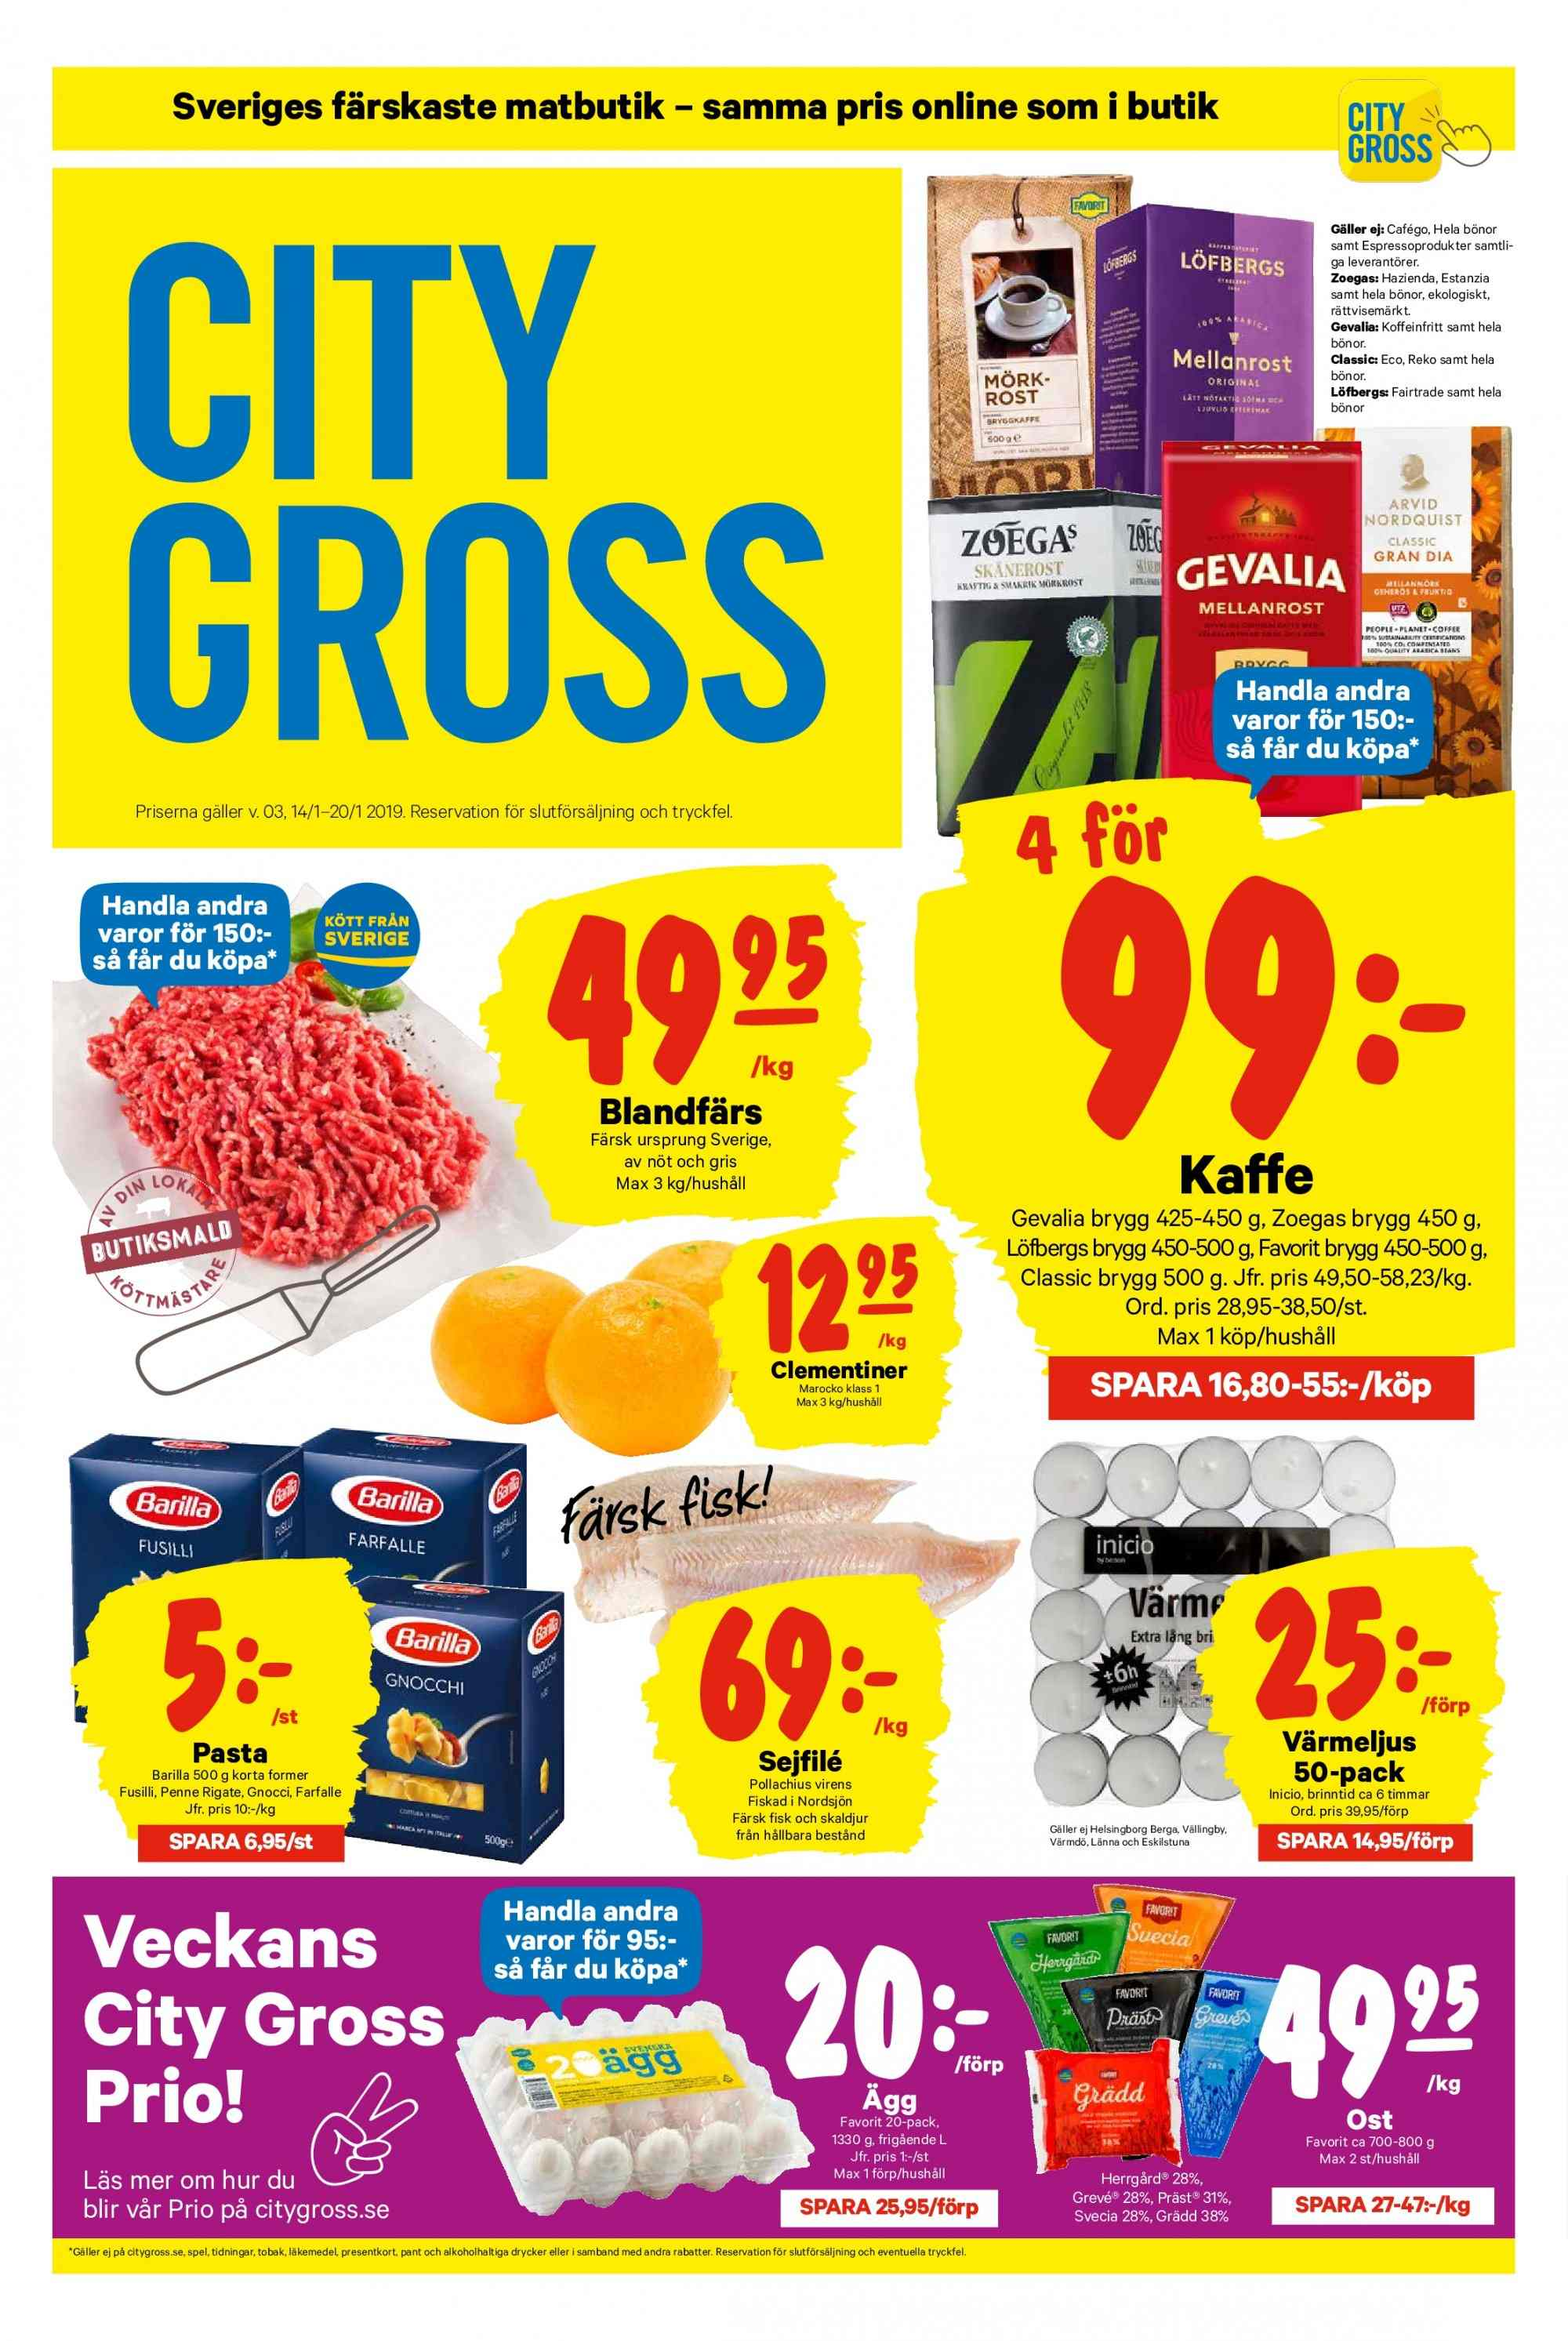 City Gross reklamblad - 14/1 2019 - 20/1 2019. Sida 1.